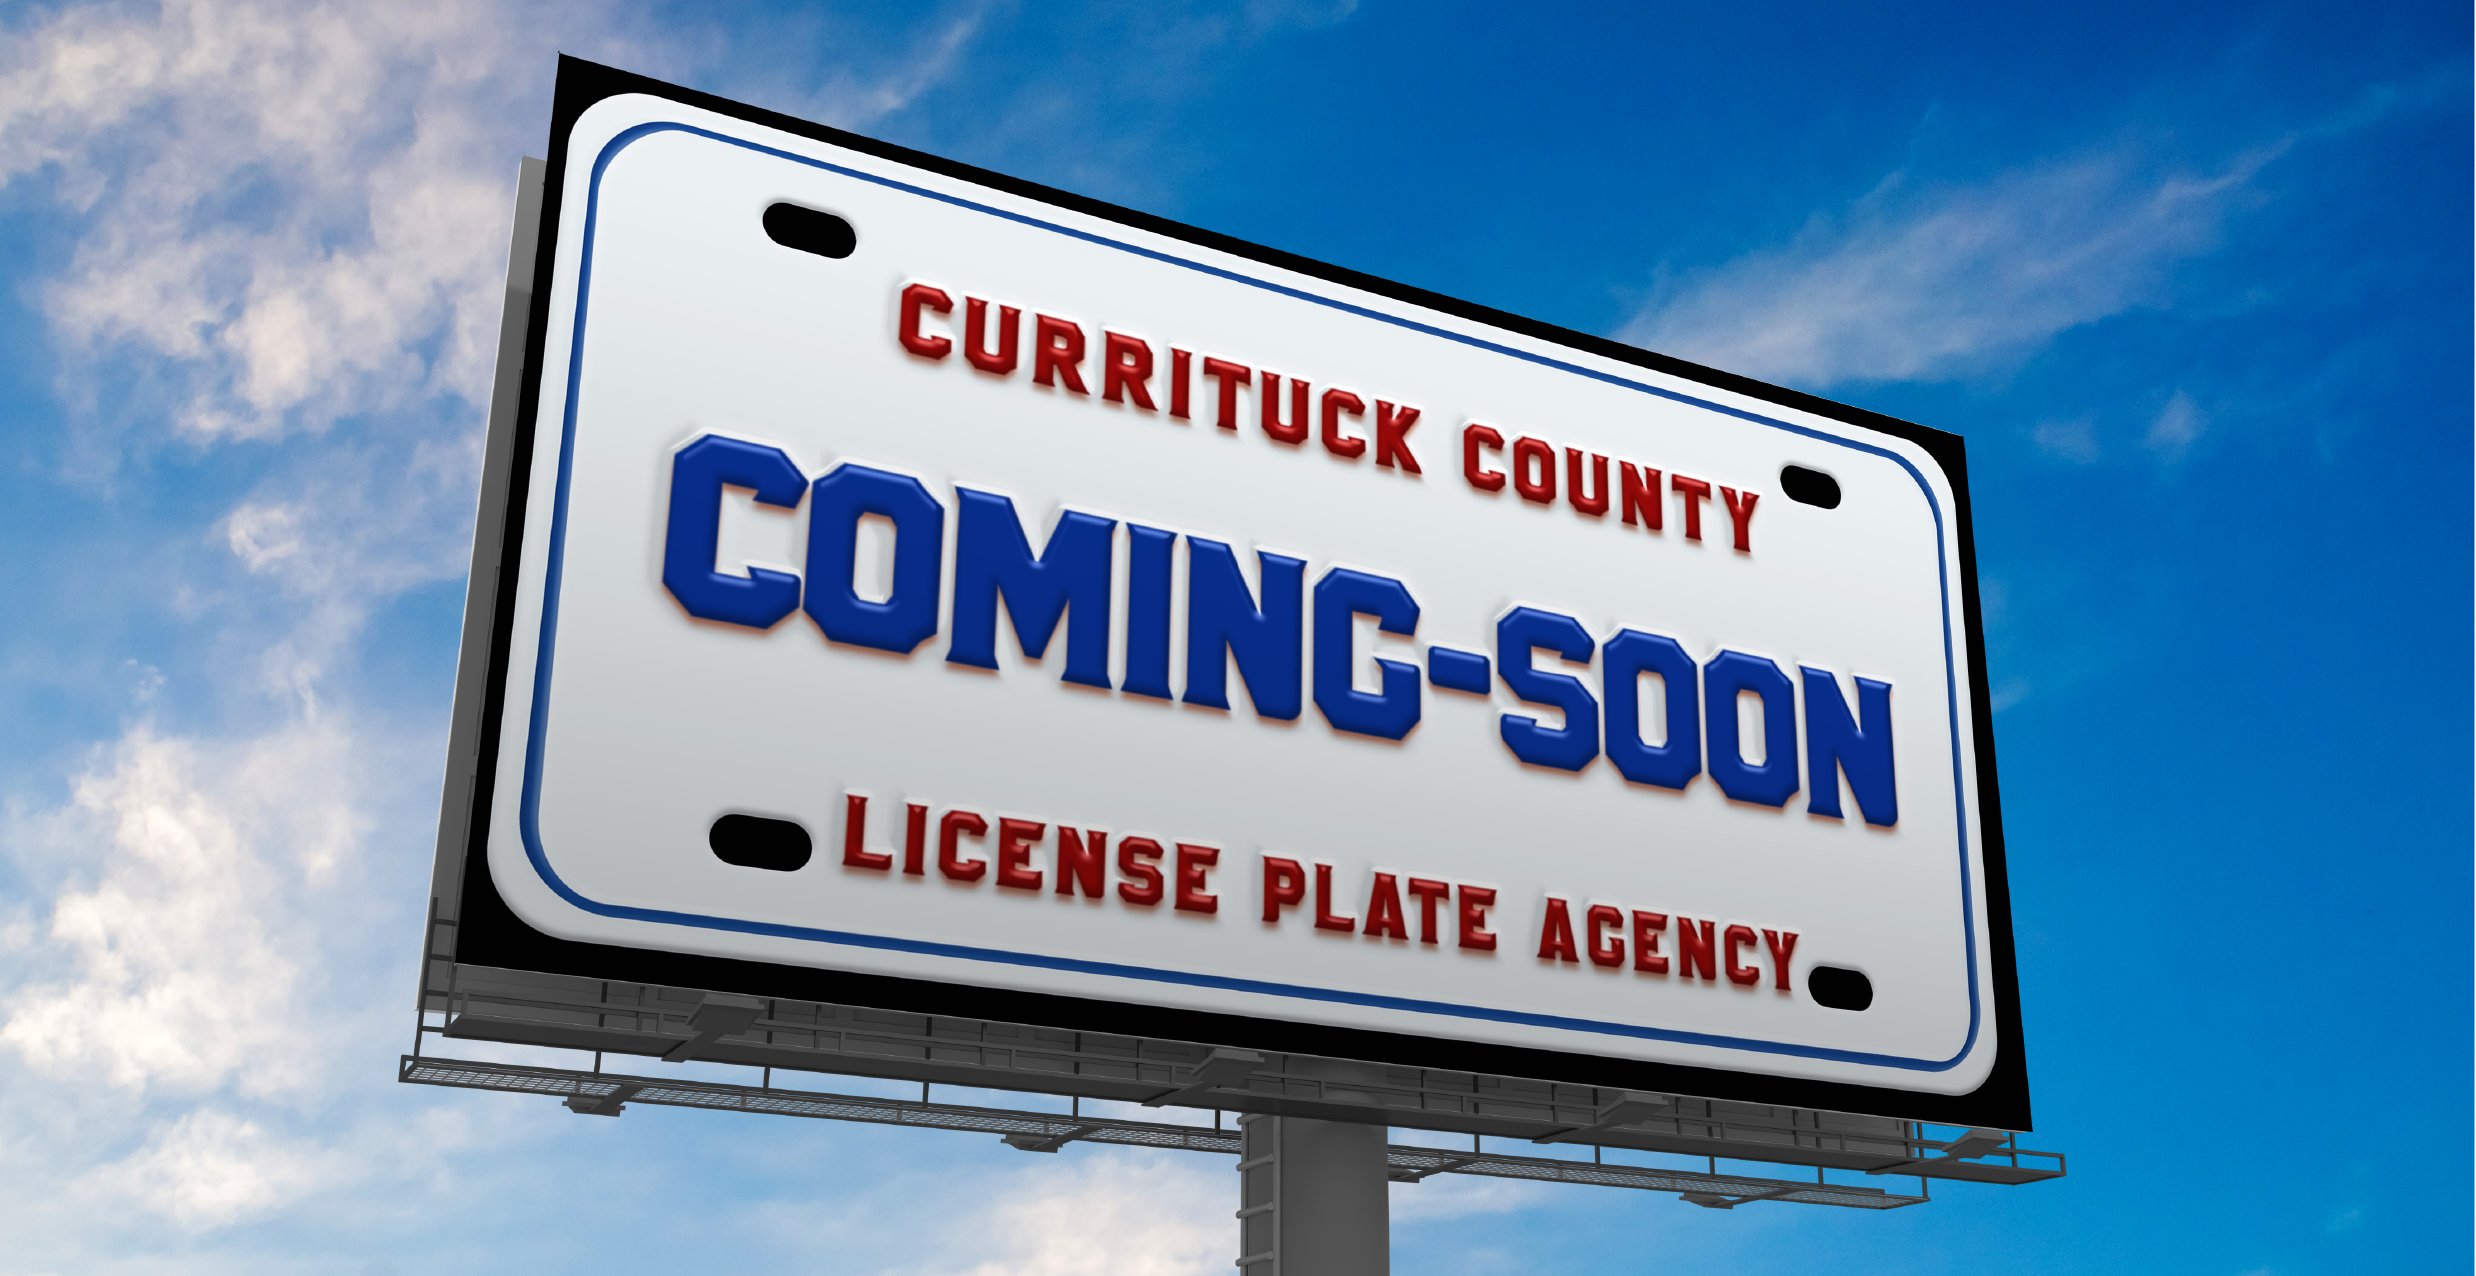 Currituck County's First License Plate Agency Opens in September